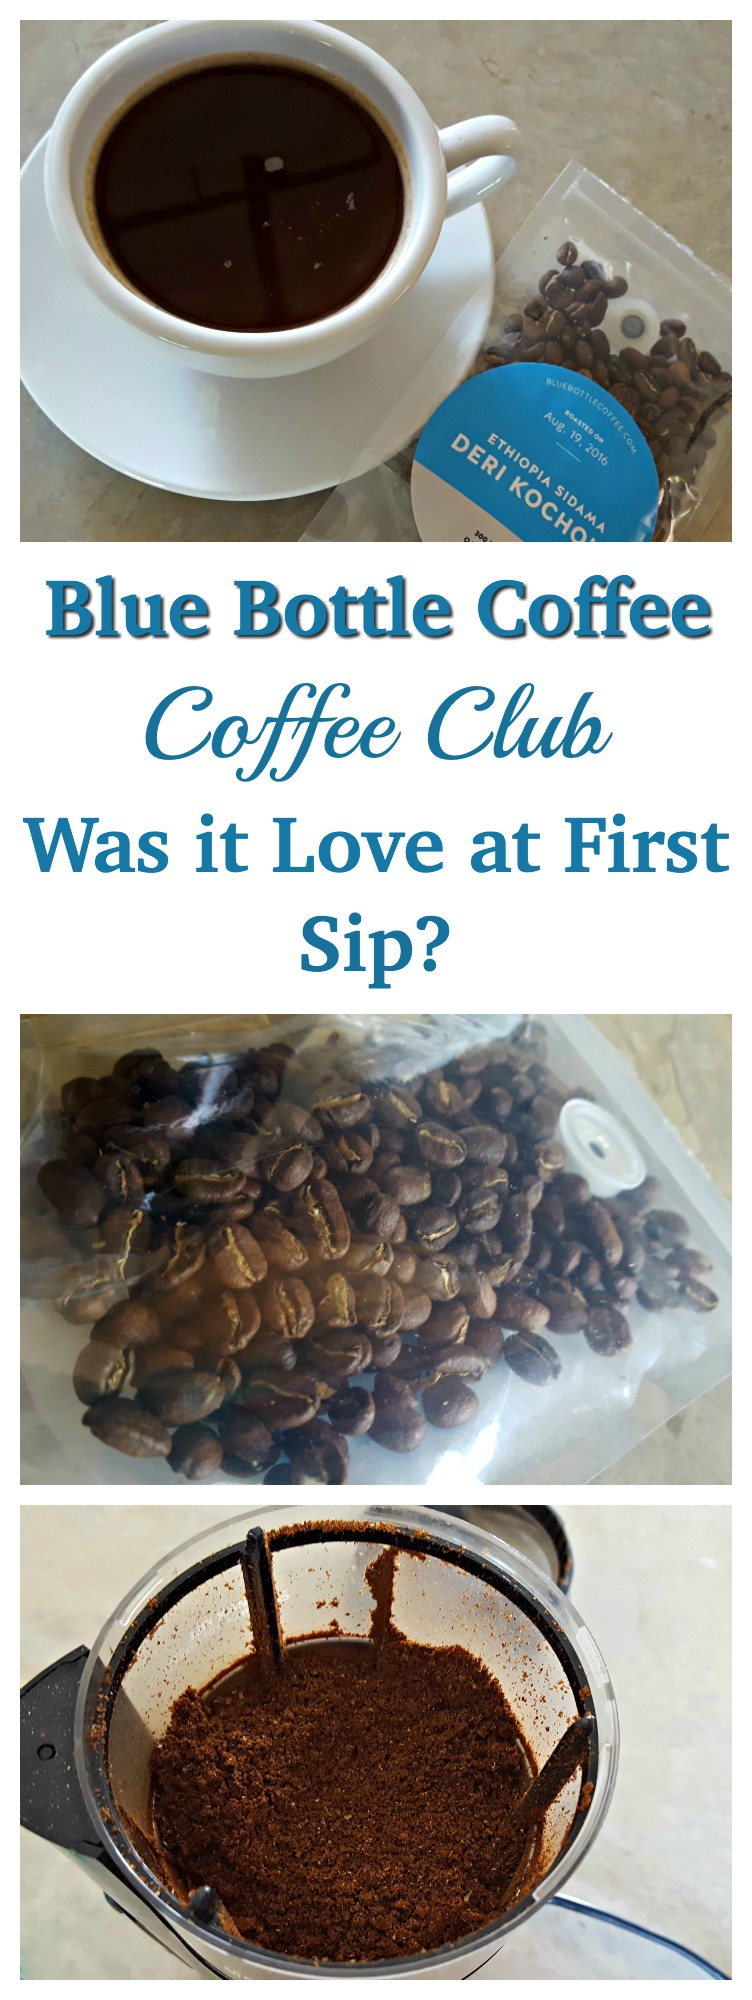 We tried Blue Bottle's Coffee Club - But was it love at first sip or not?!